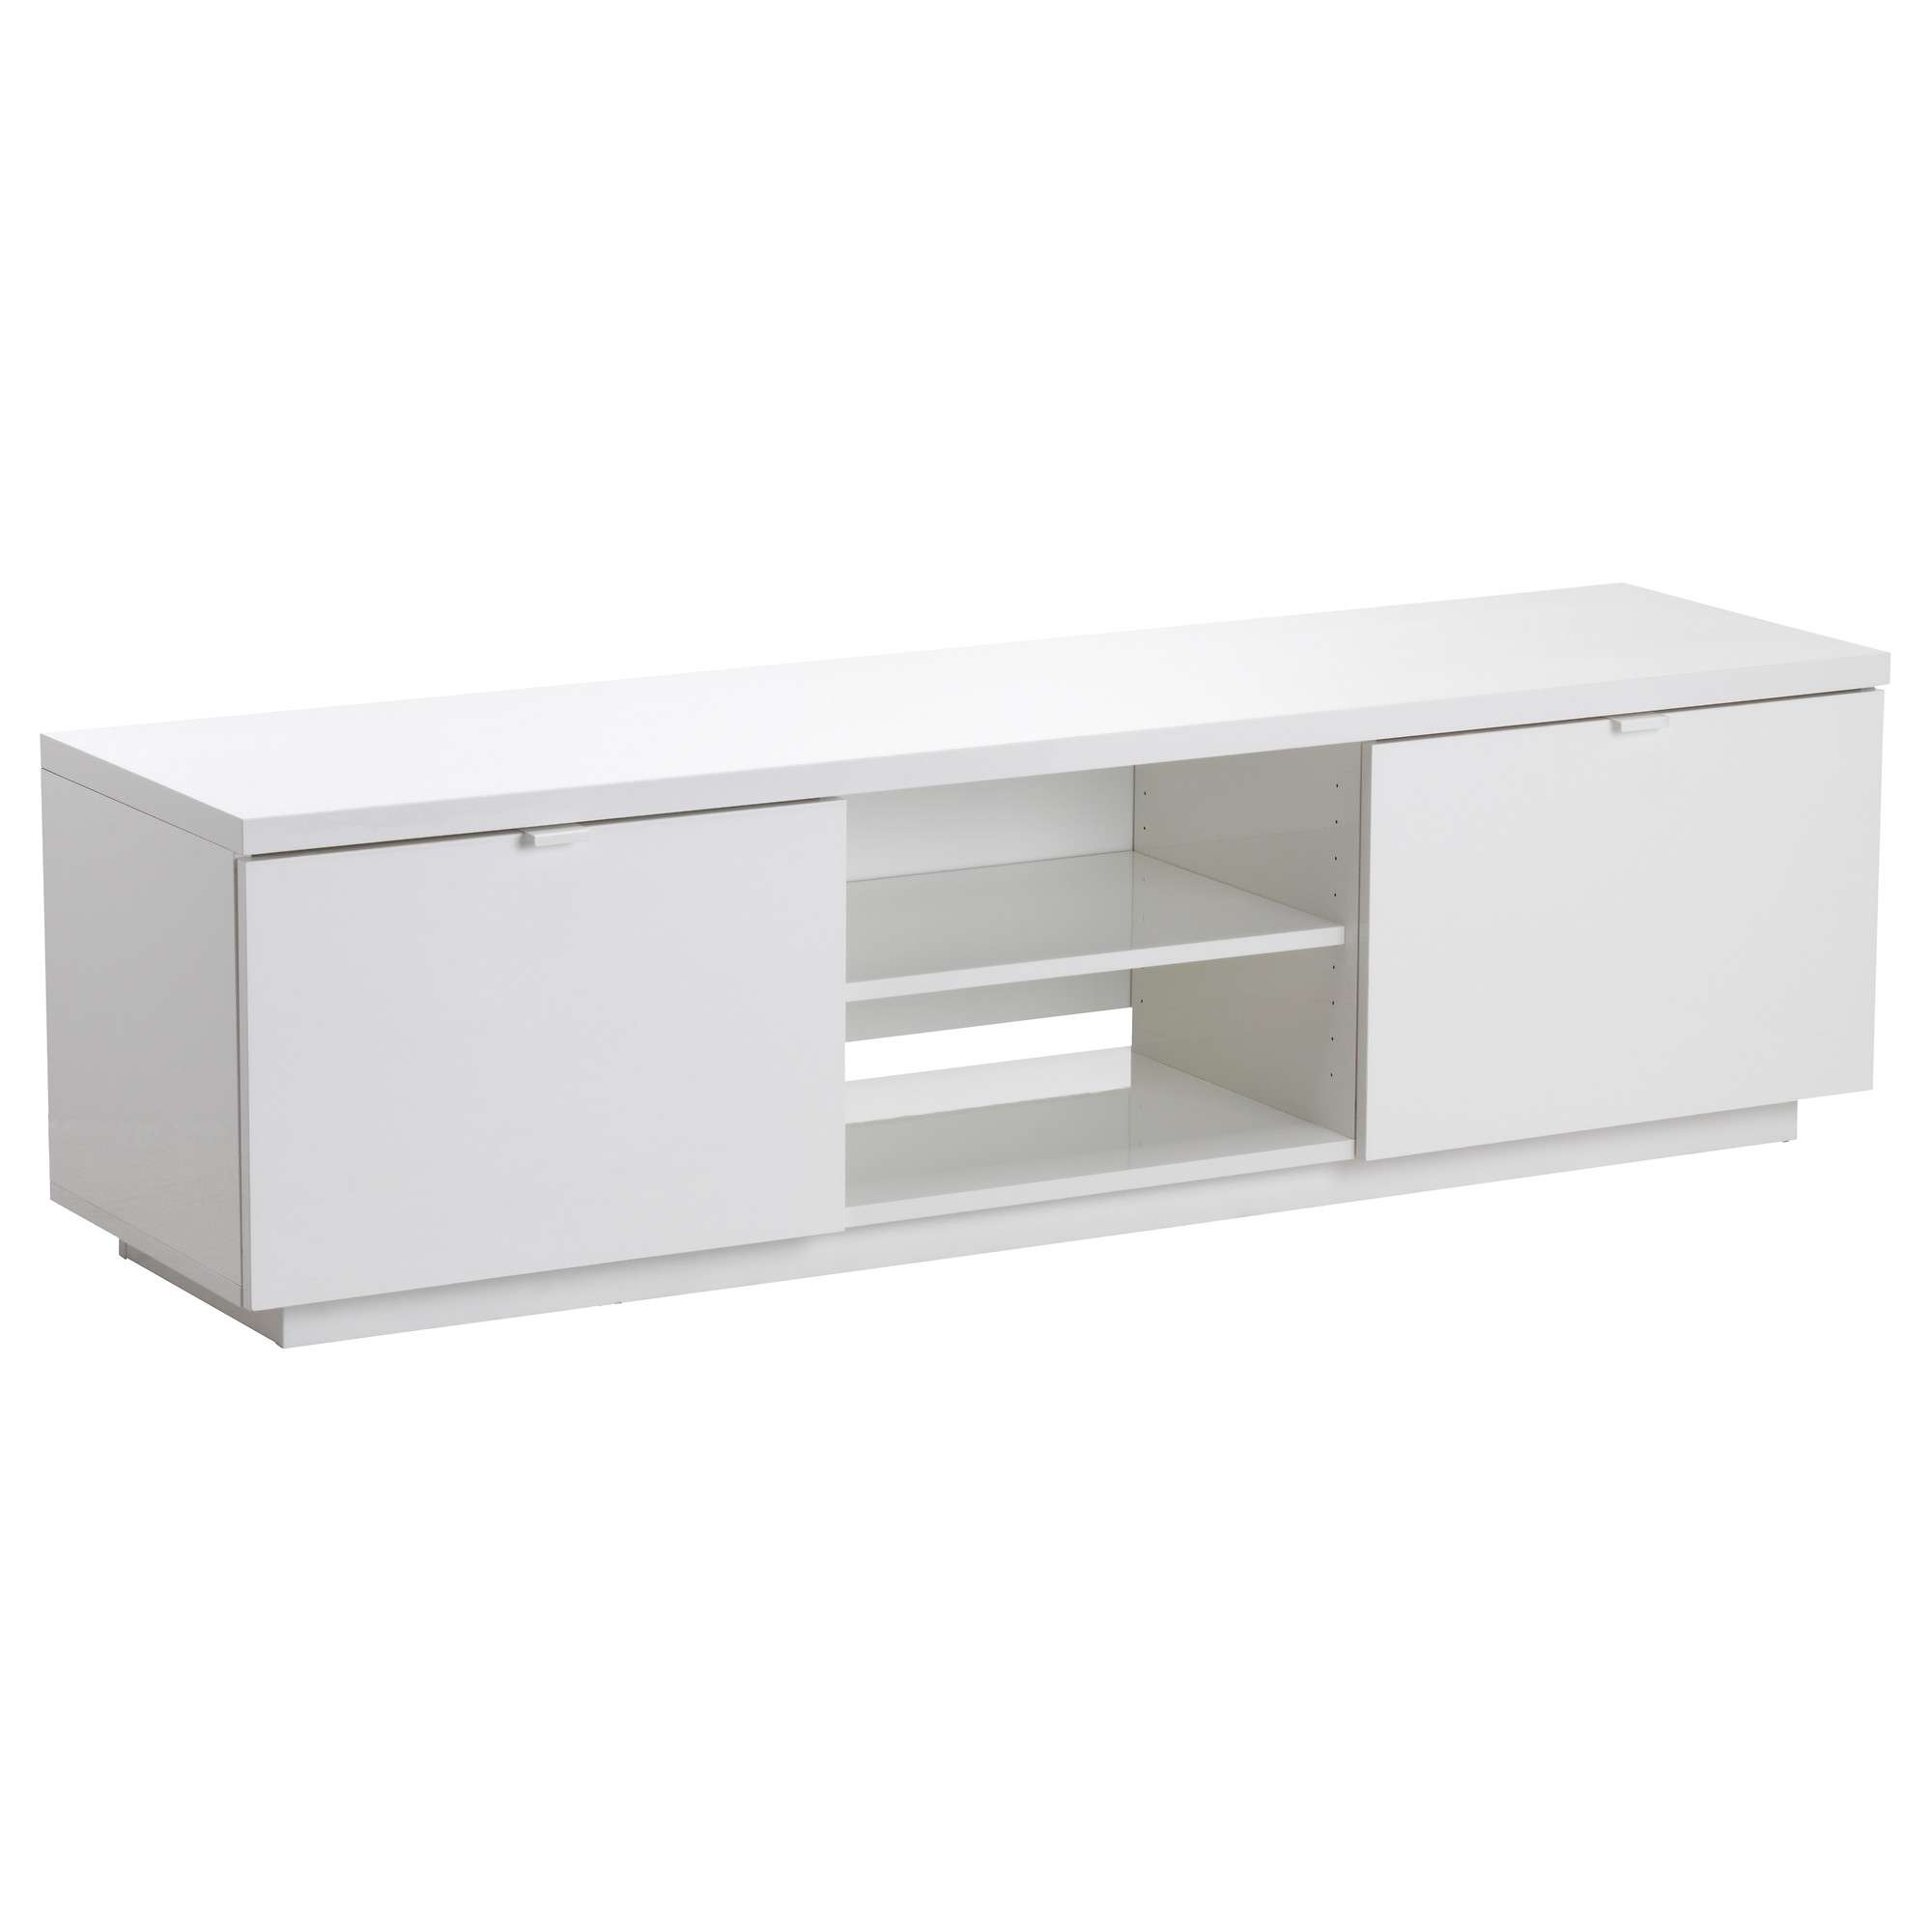 Byås Tv Bench High Gloss White 160x42x45 Cm – Ikea With White Gloss Ikea Sideboards (View 7 of 20)